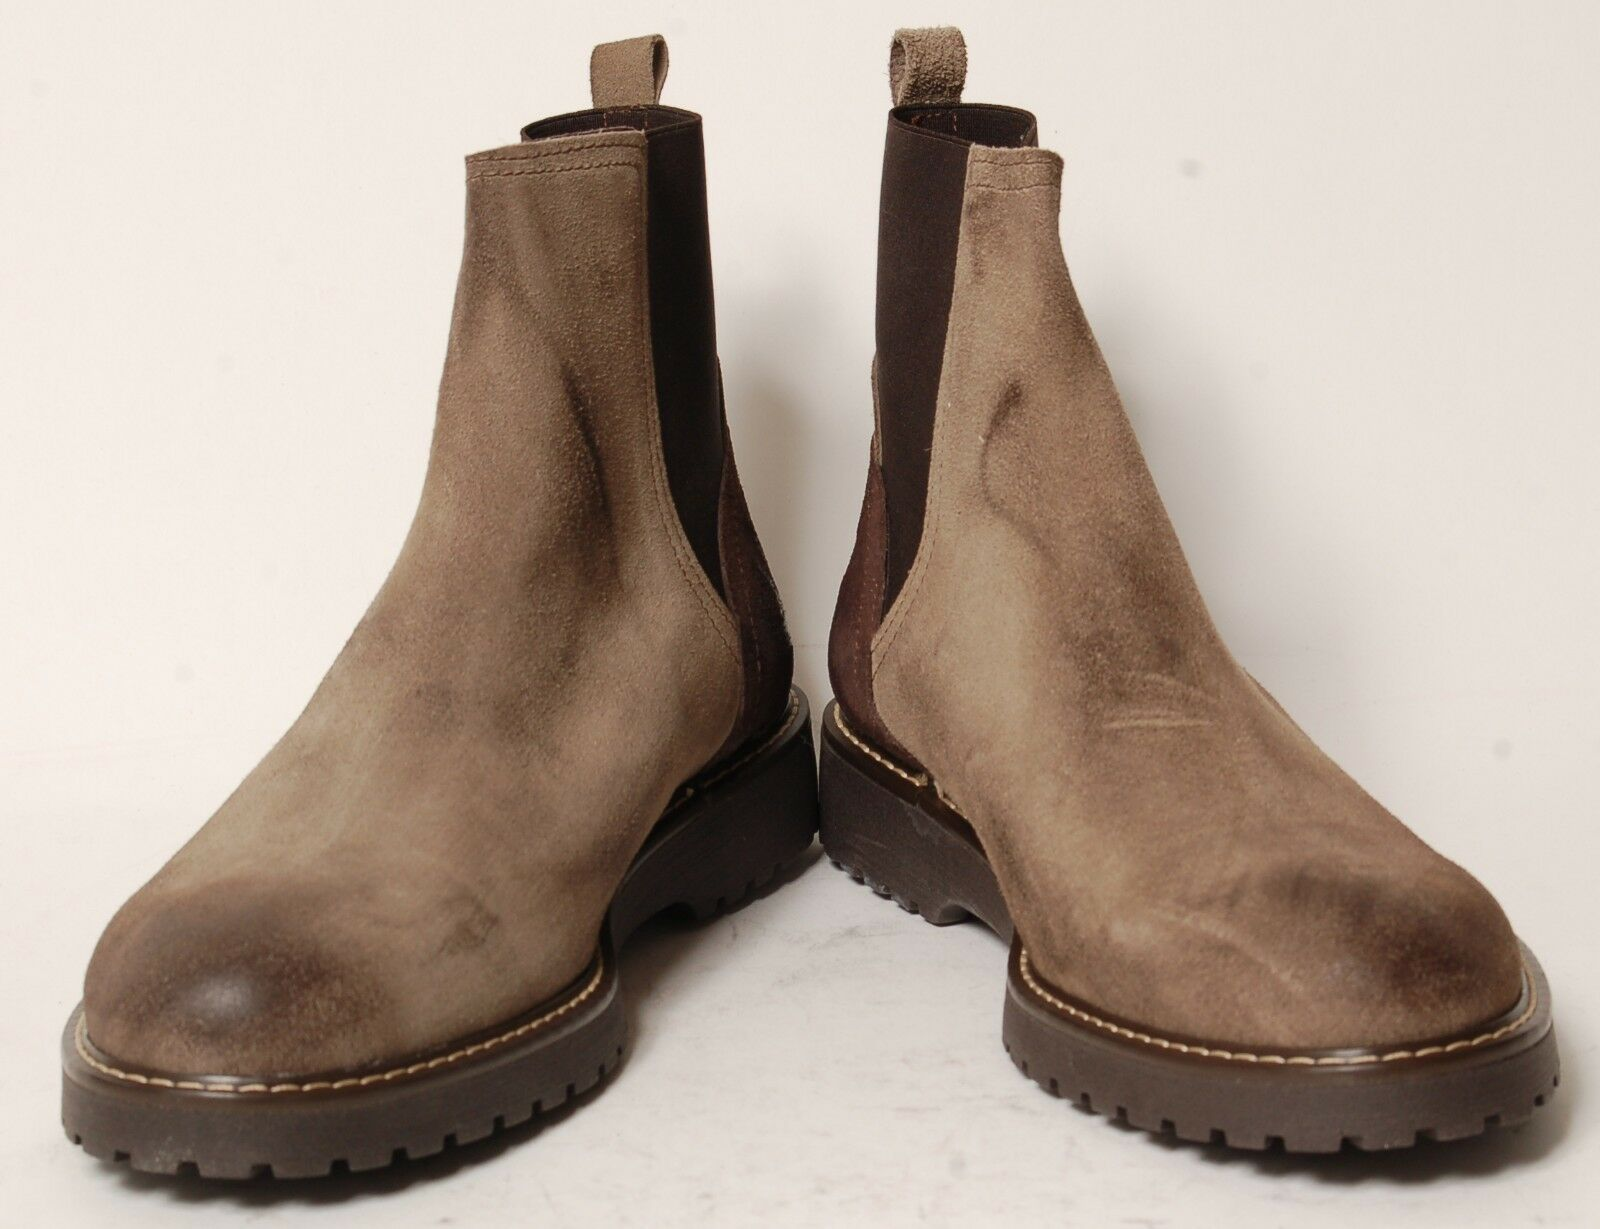 Acc Hand Made, Italian Ankle Boots Chelsea Boots 5012